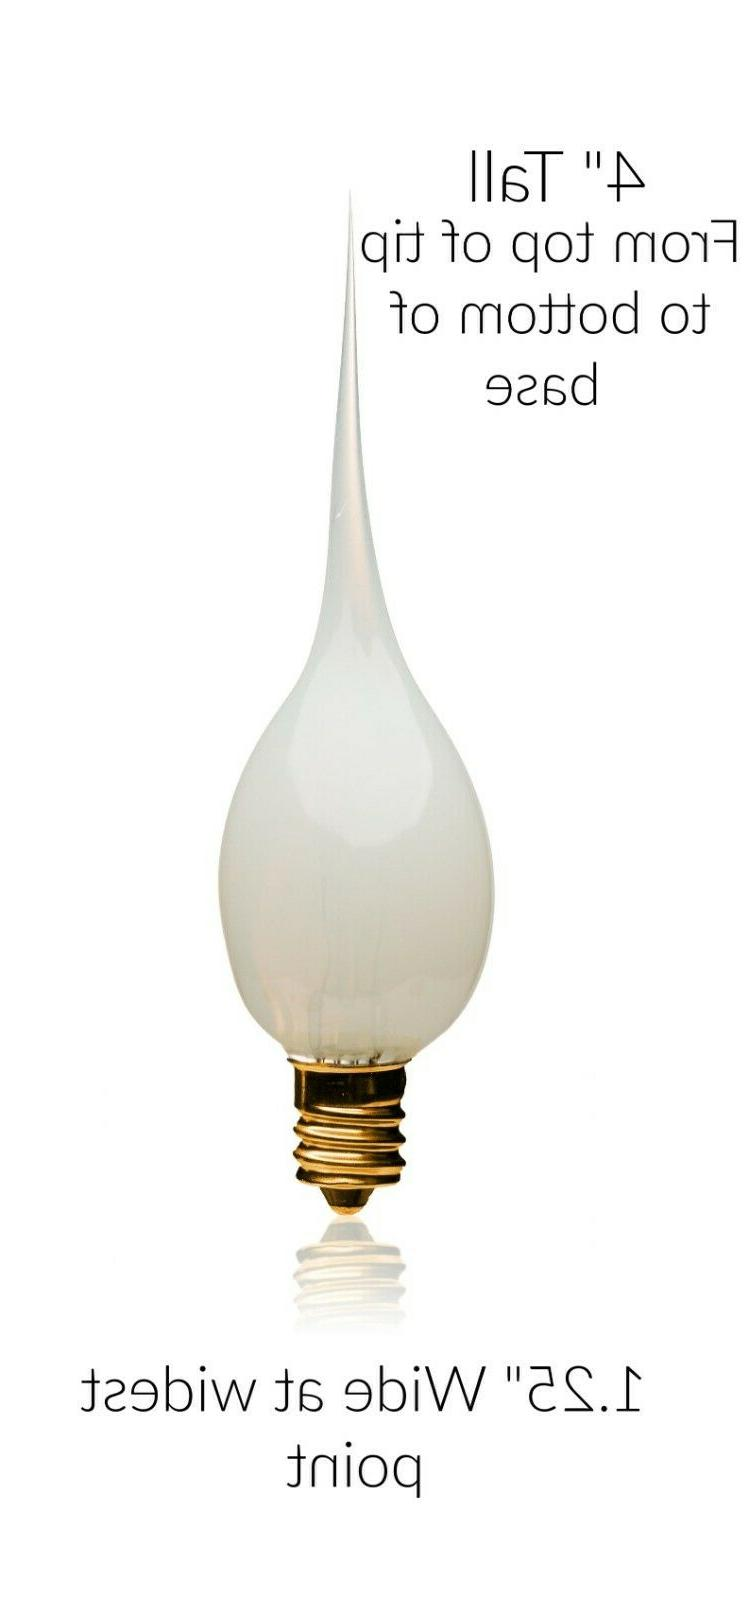 Silicone Bulbs for 6 12 Candle Light Window Bulb